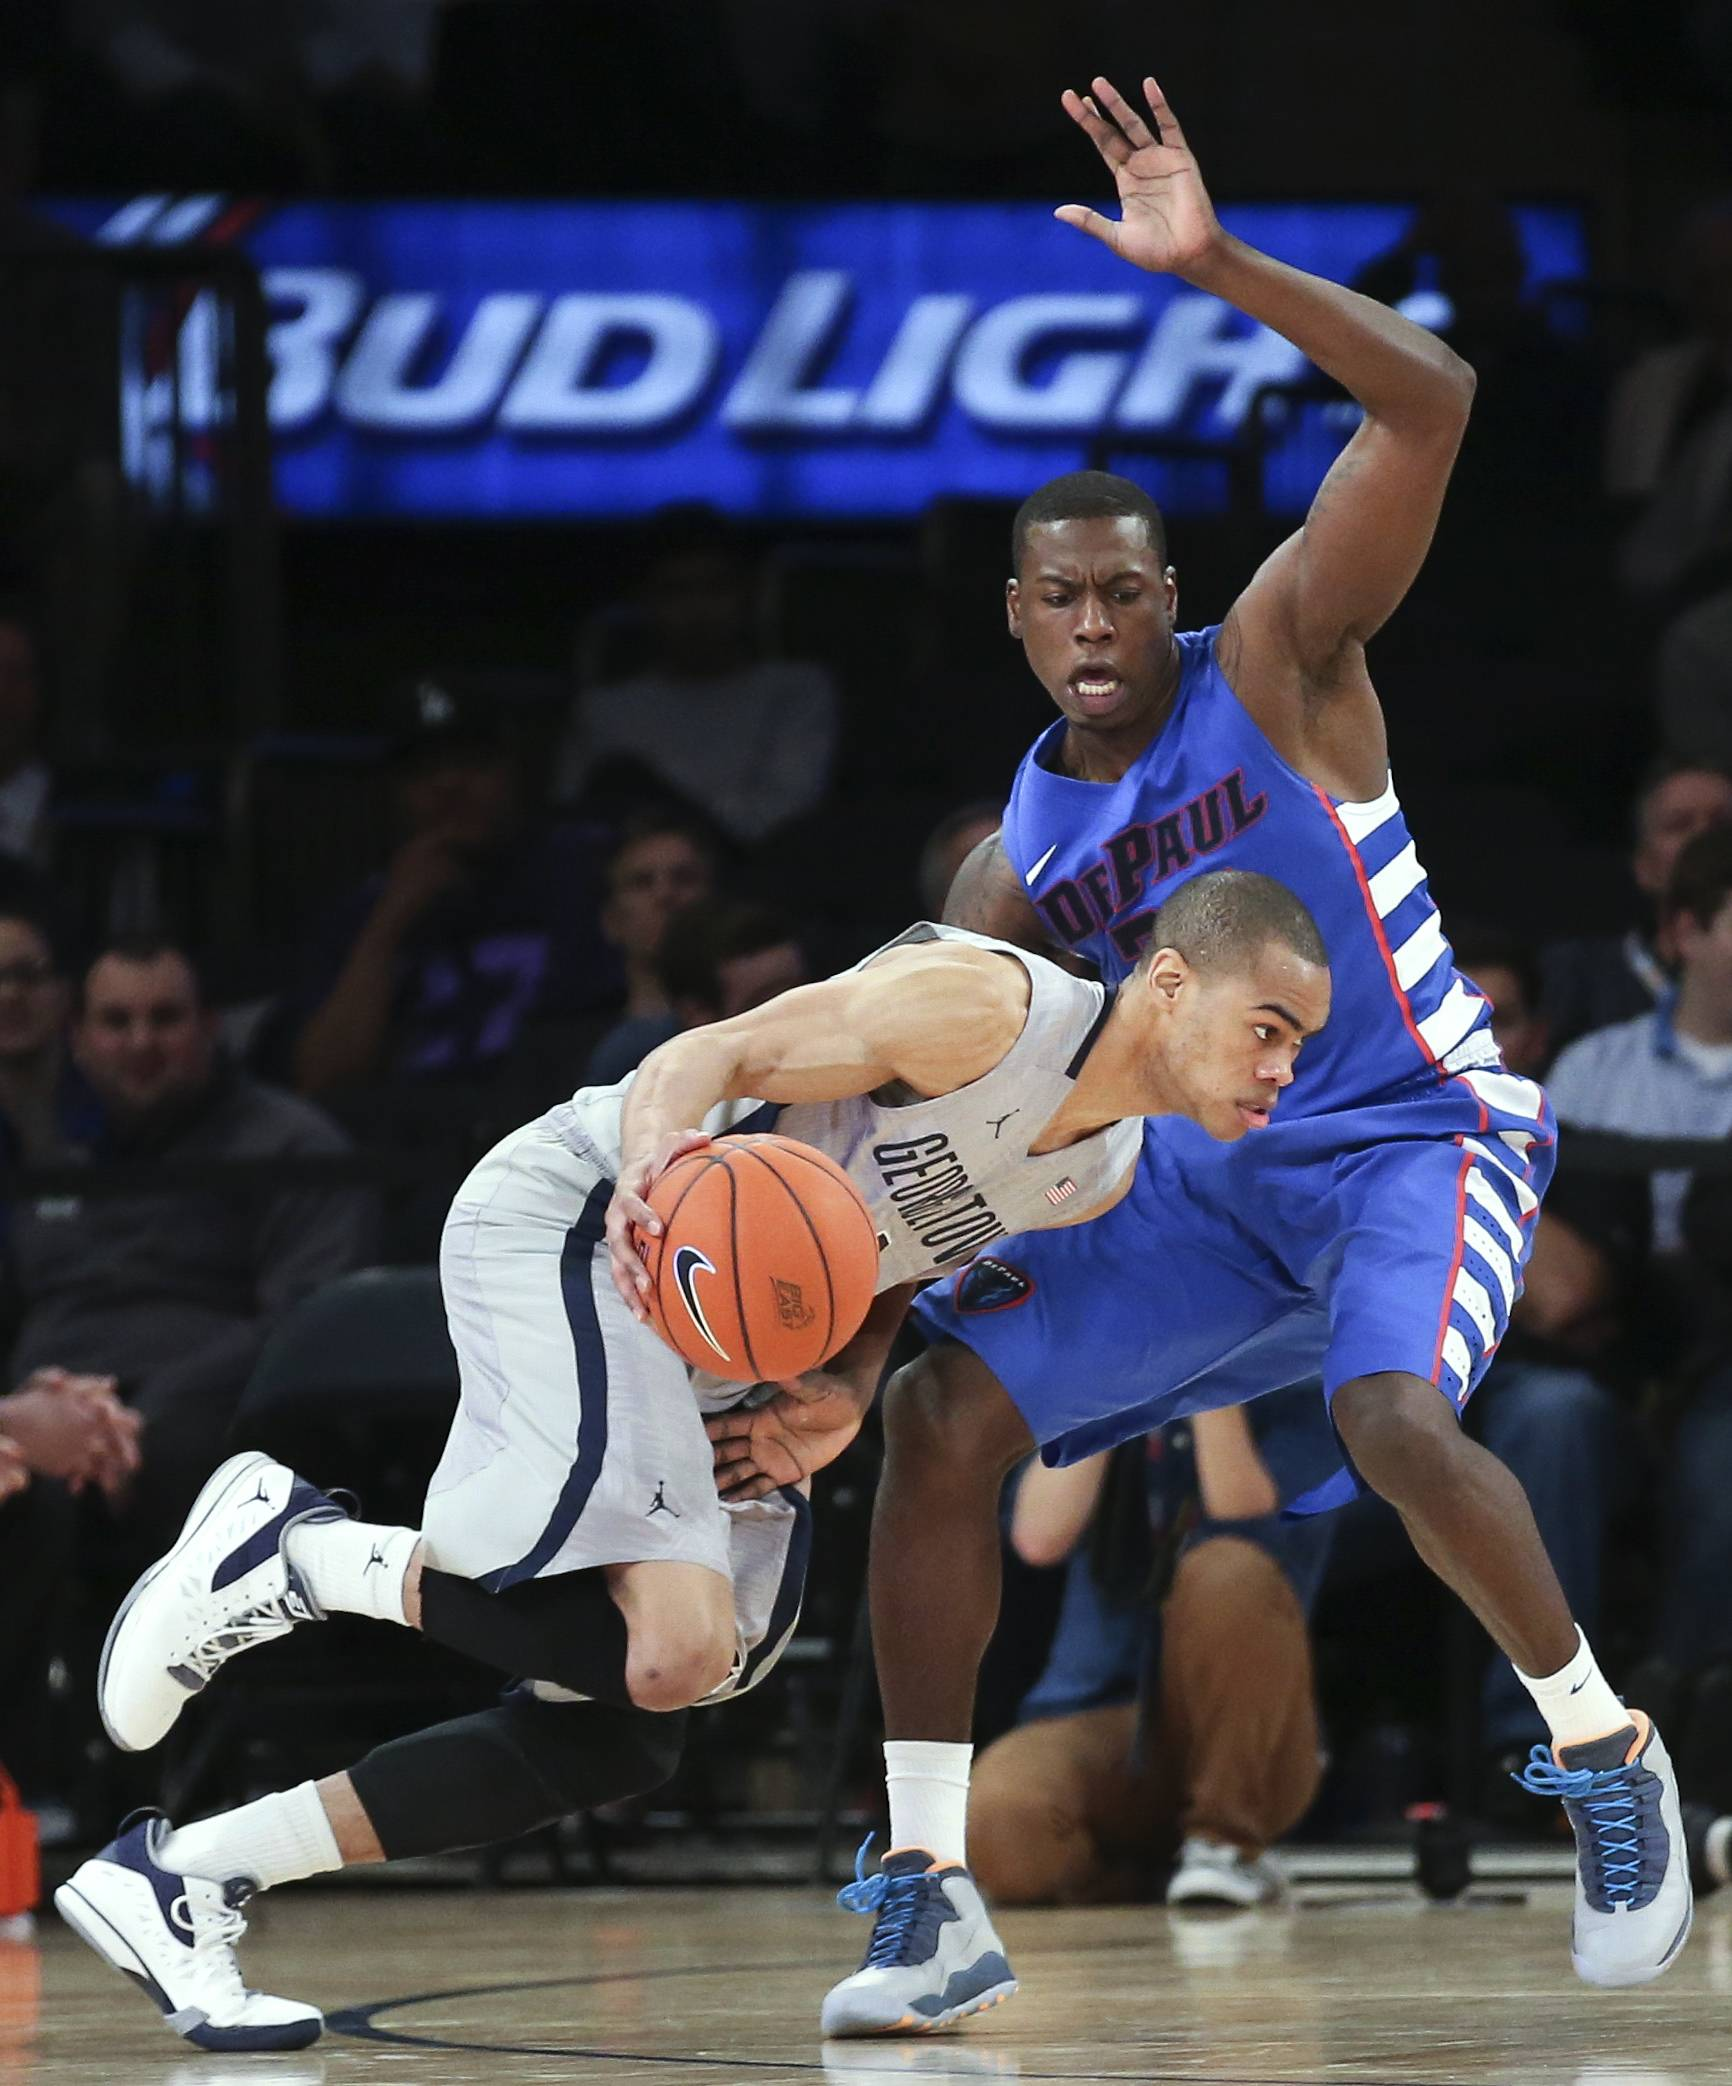 Georgetown guard Markel Starks drives past DePaul guard Charles McKinney during the second half of a Big East tournament game Wednesday at Madison Square Garden.